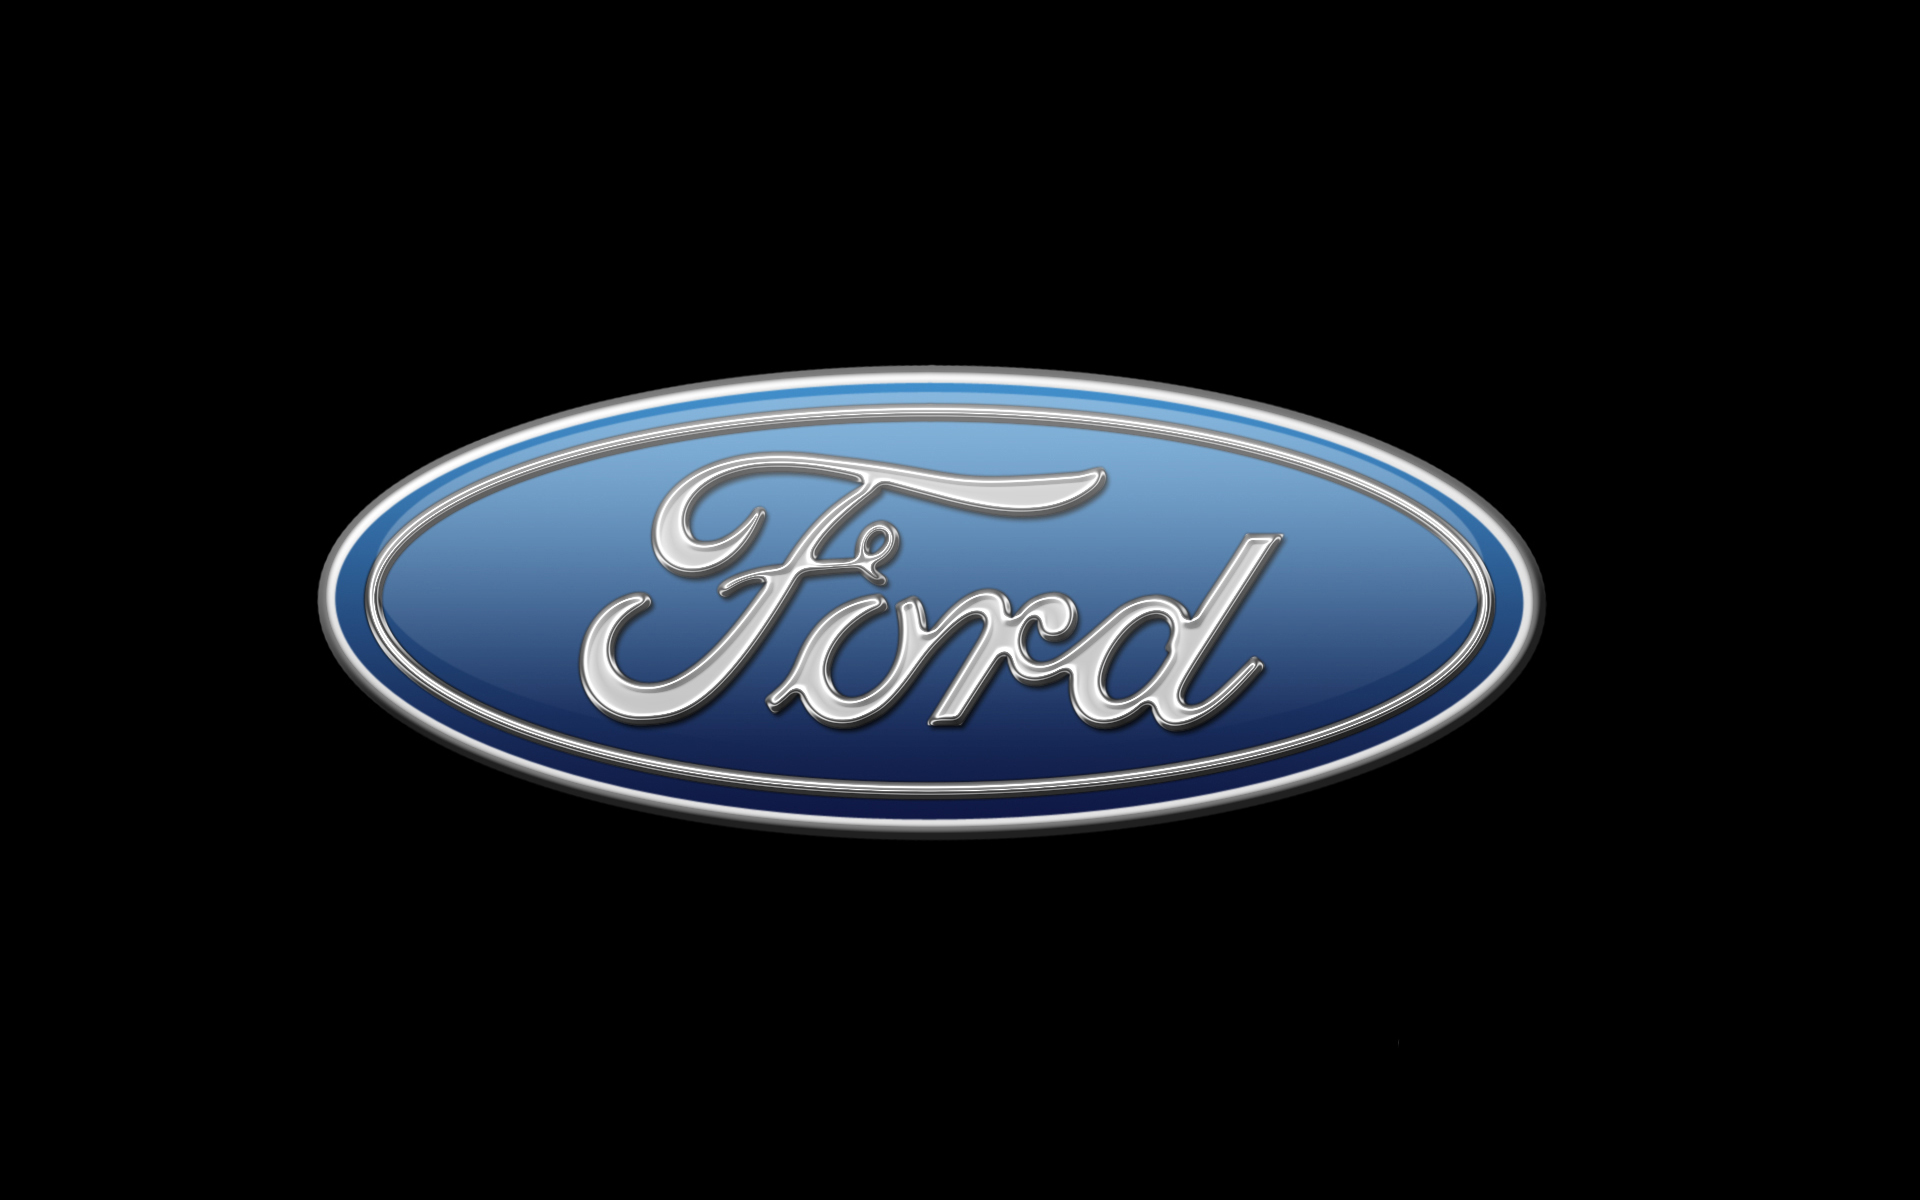 Ford Logo Wallpapers Pictures to pin 1920x1200